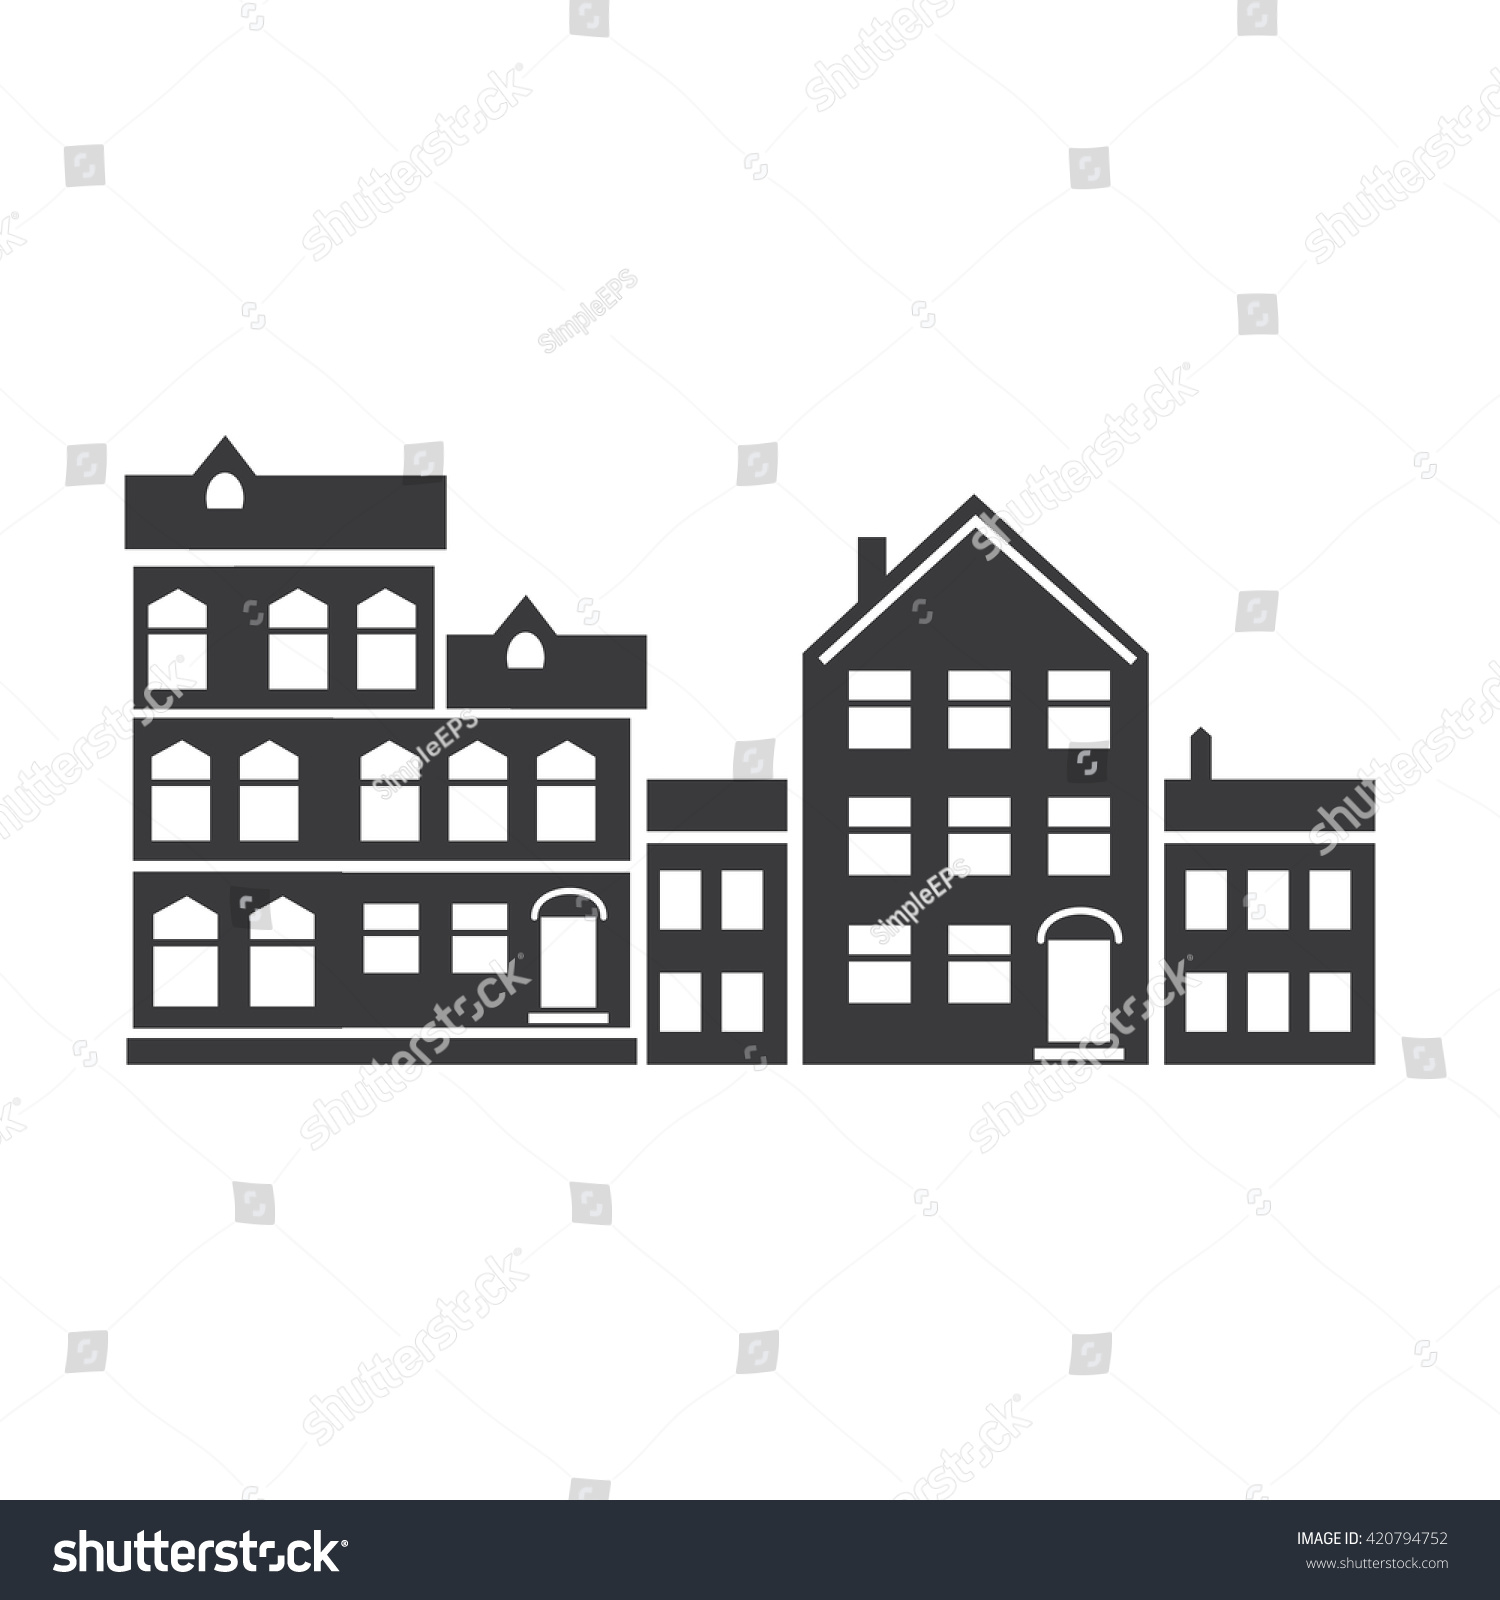 Black and white icon with the image of the building simple illustrations vehicles of high